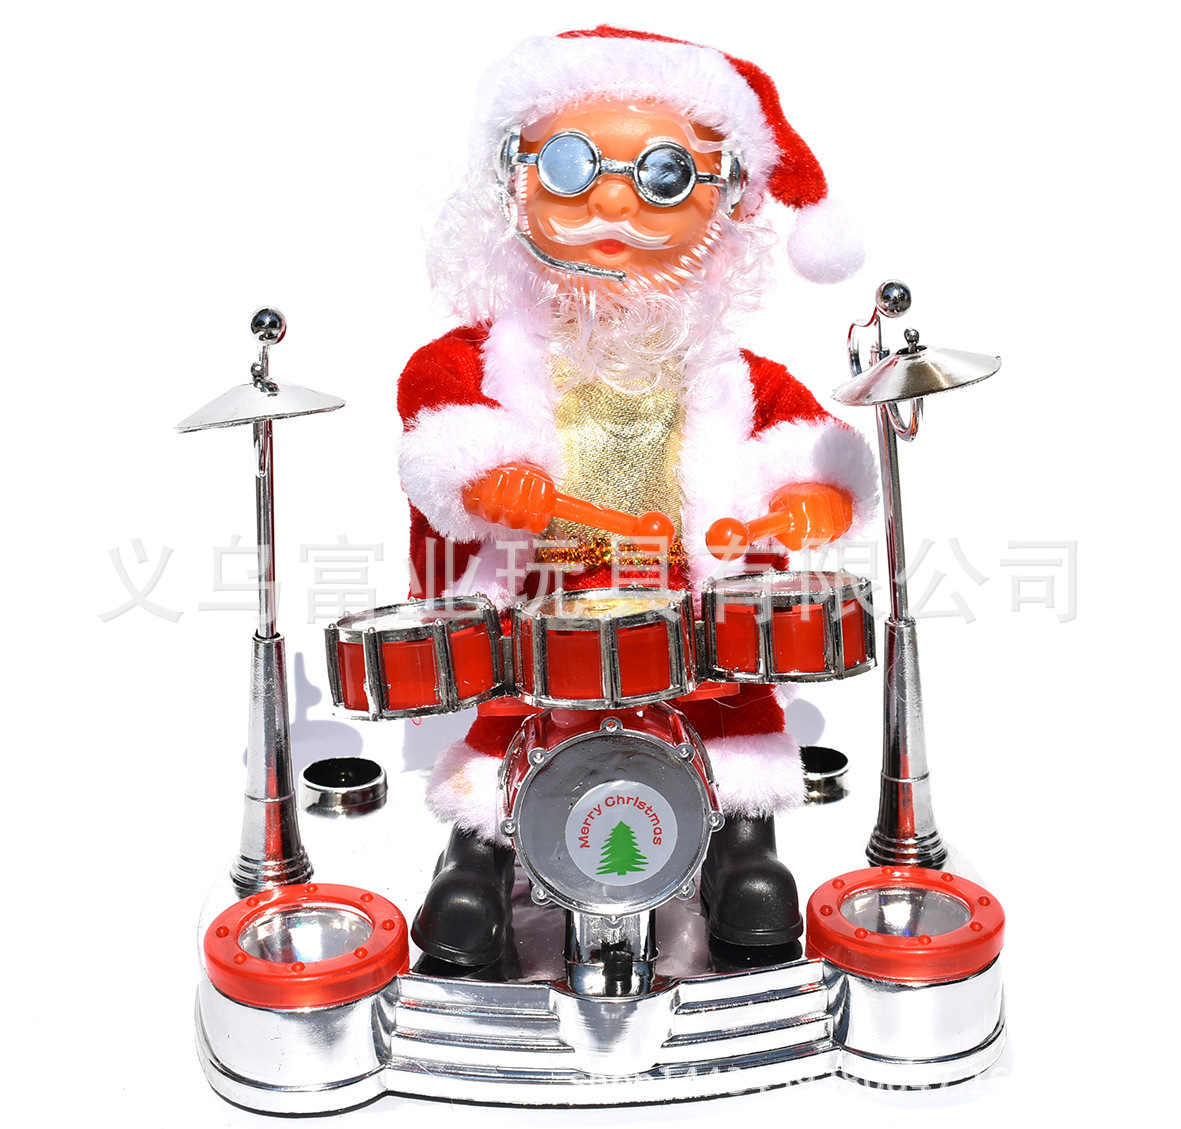 Iconic Musician Santa Claus Toy for Christmas Gifts